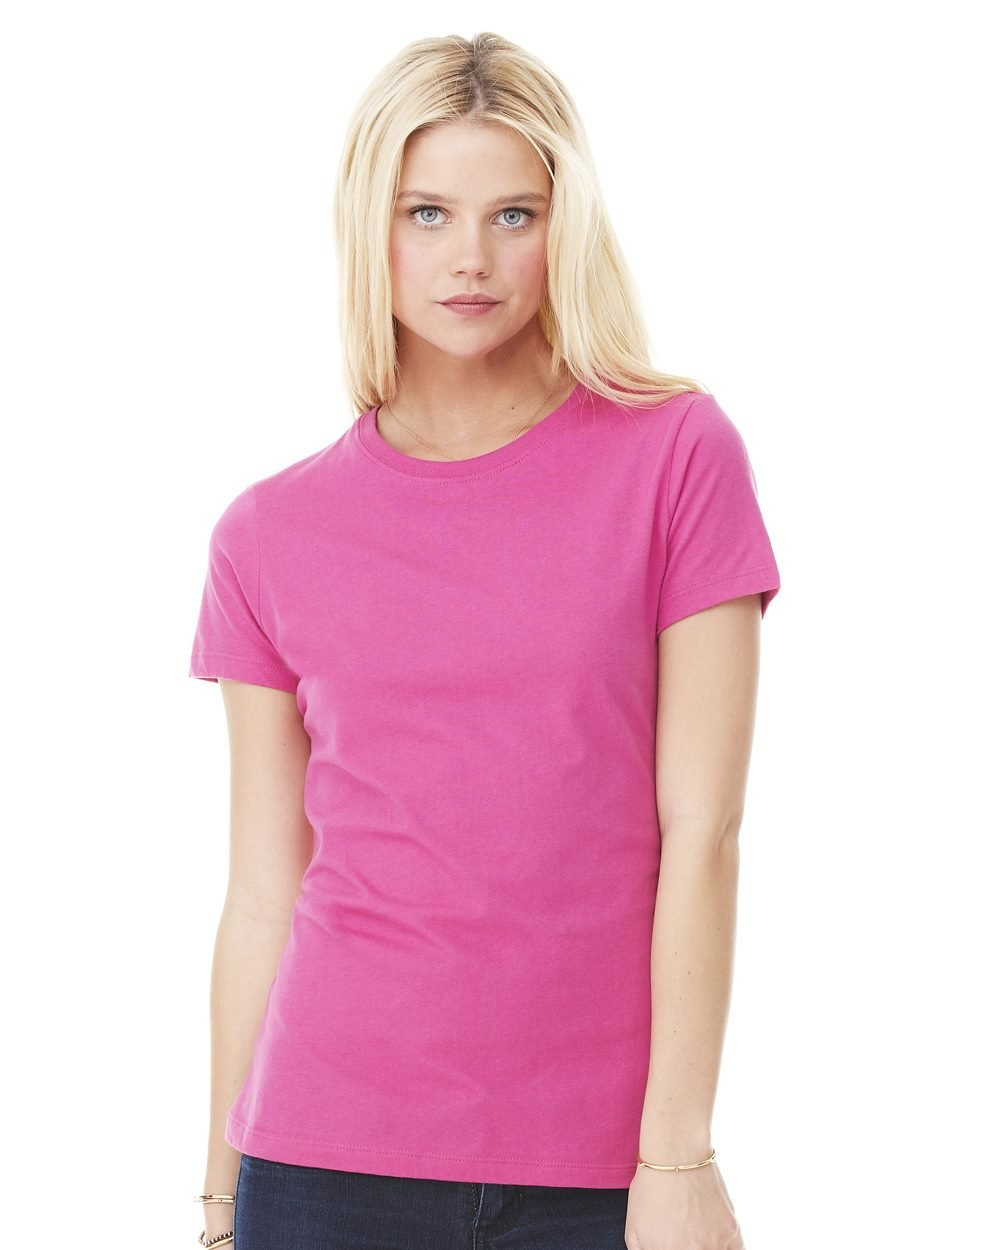 Bella and Canvas Ladies' Short Sleeve Jersey T-Shirt - Evan ...